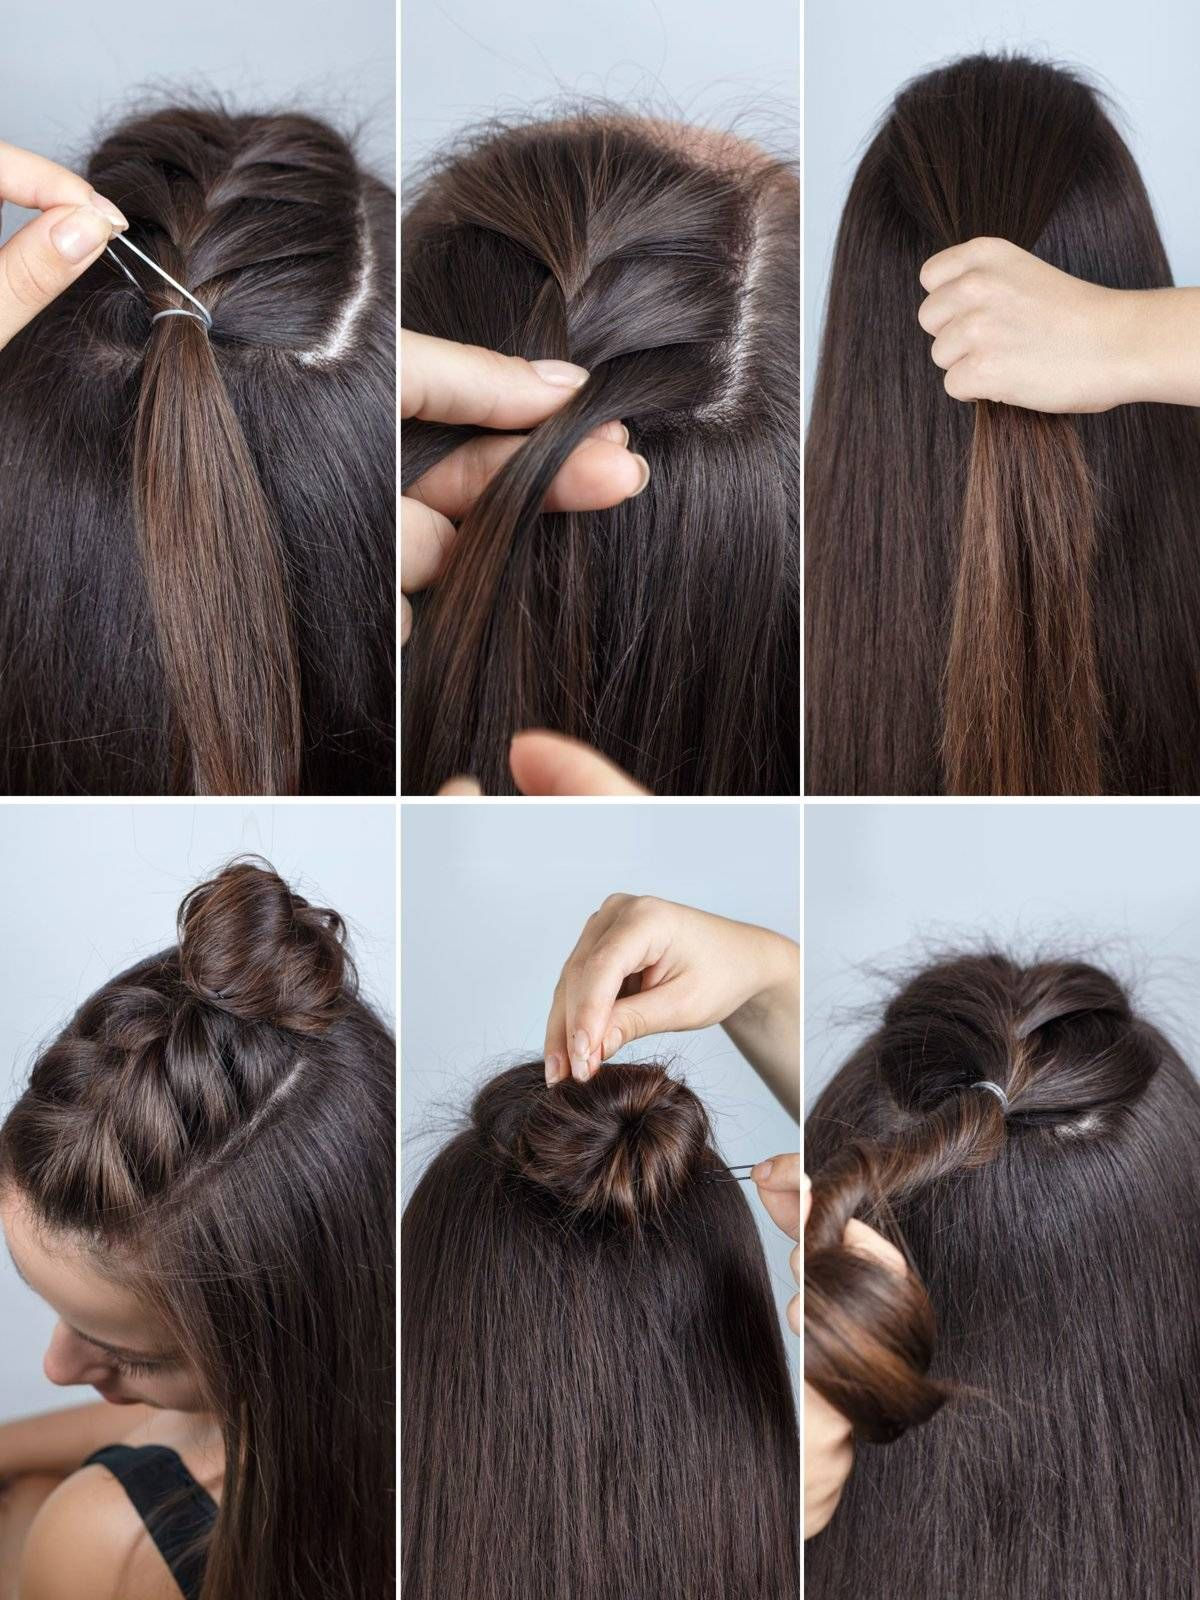 210 Hairstyles DIY And Tutorial For All Hair Lengths